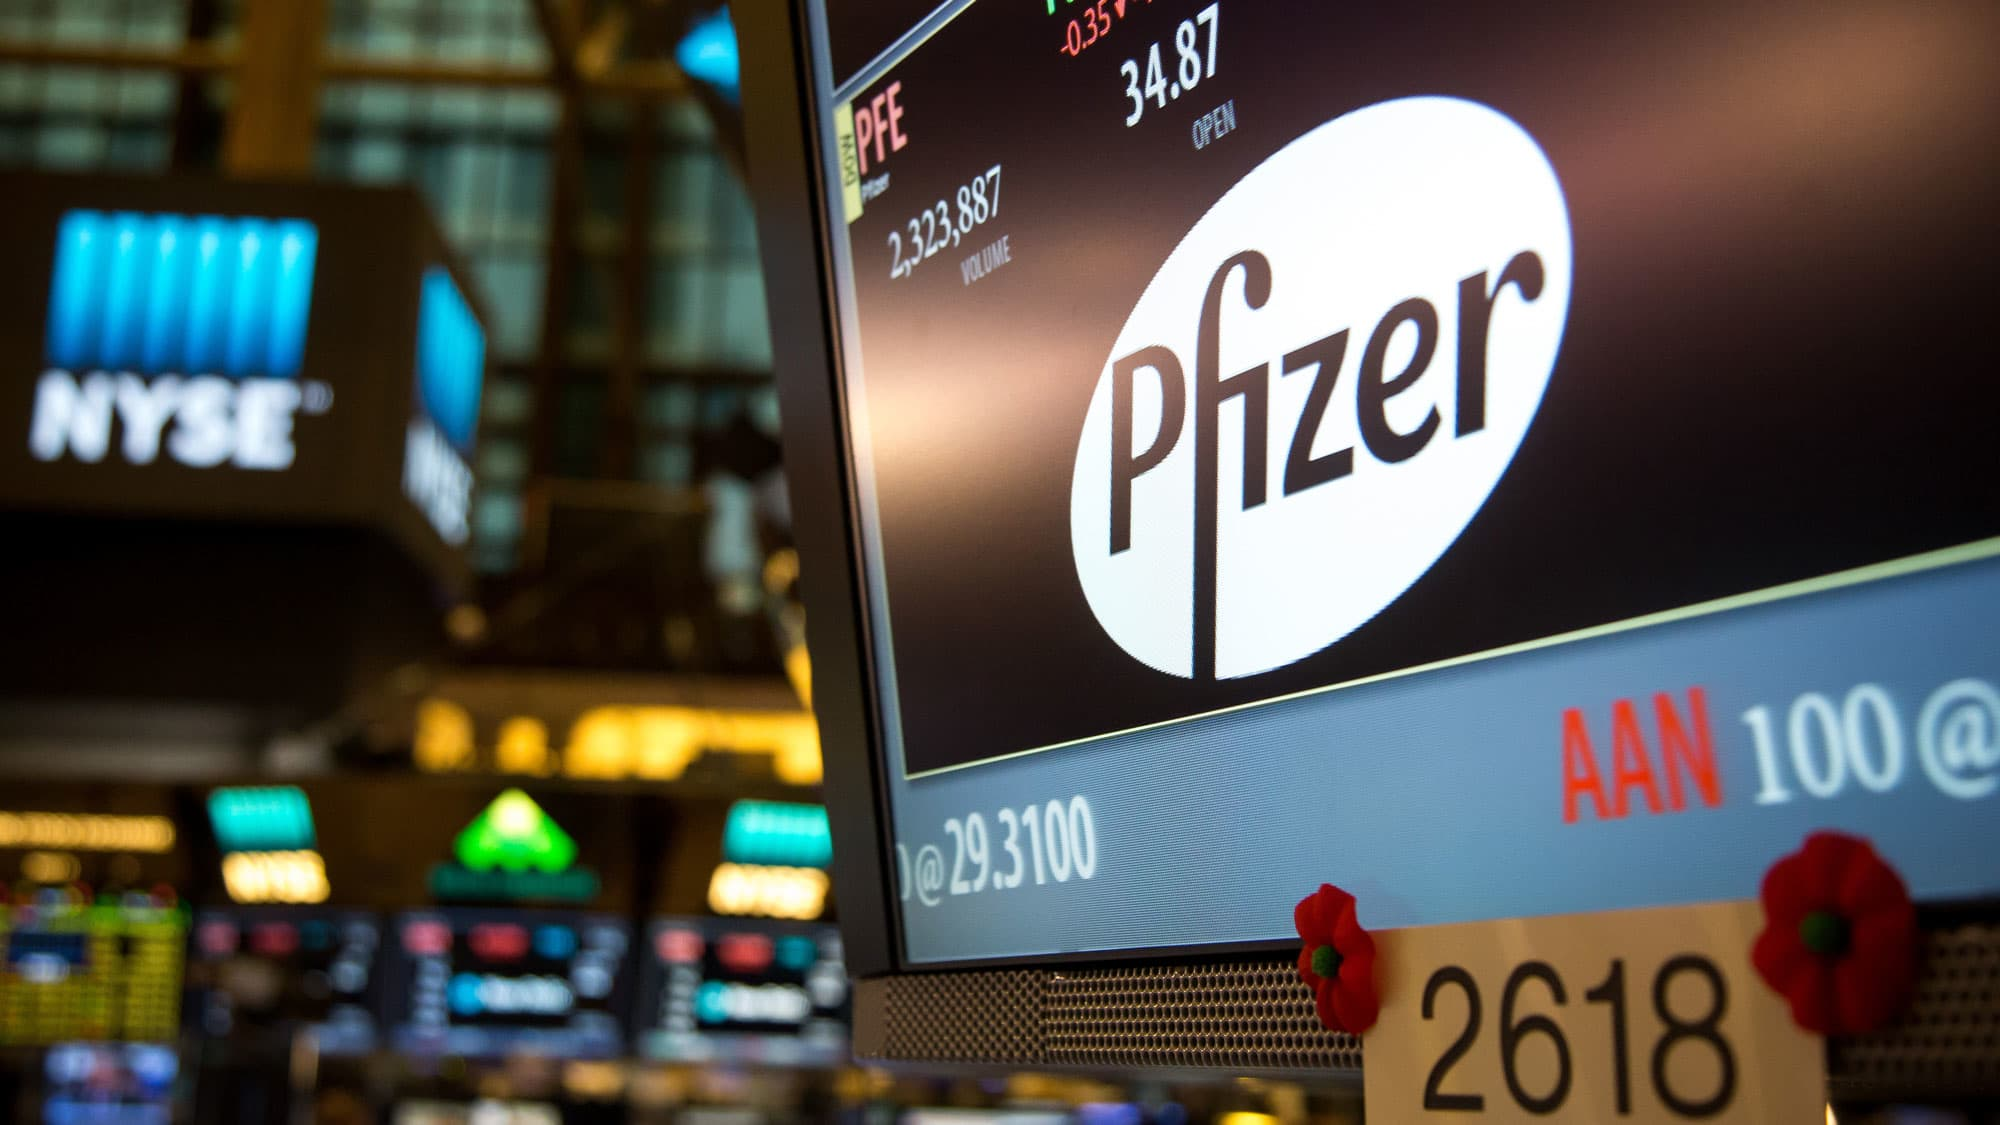 Pfizer Biontech Announce Covid 19 Vaccine Candidate Is 90 Effective